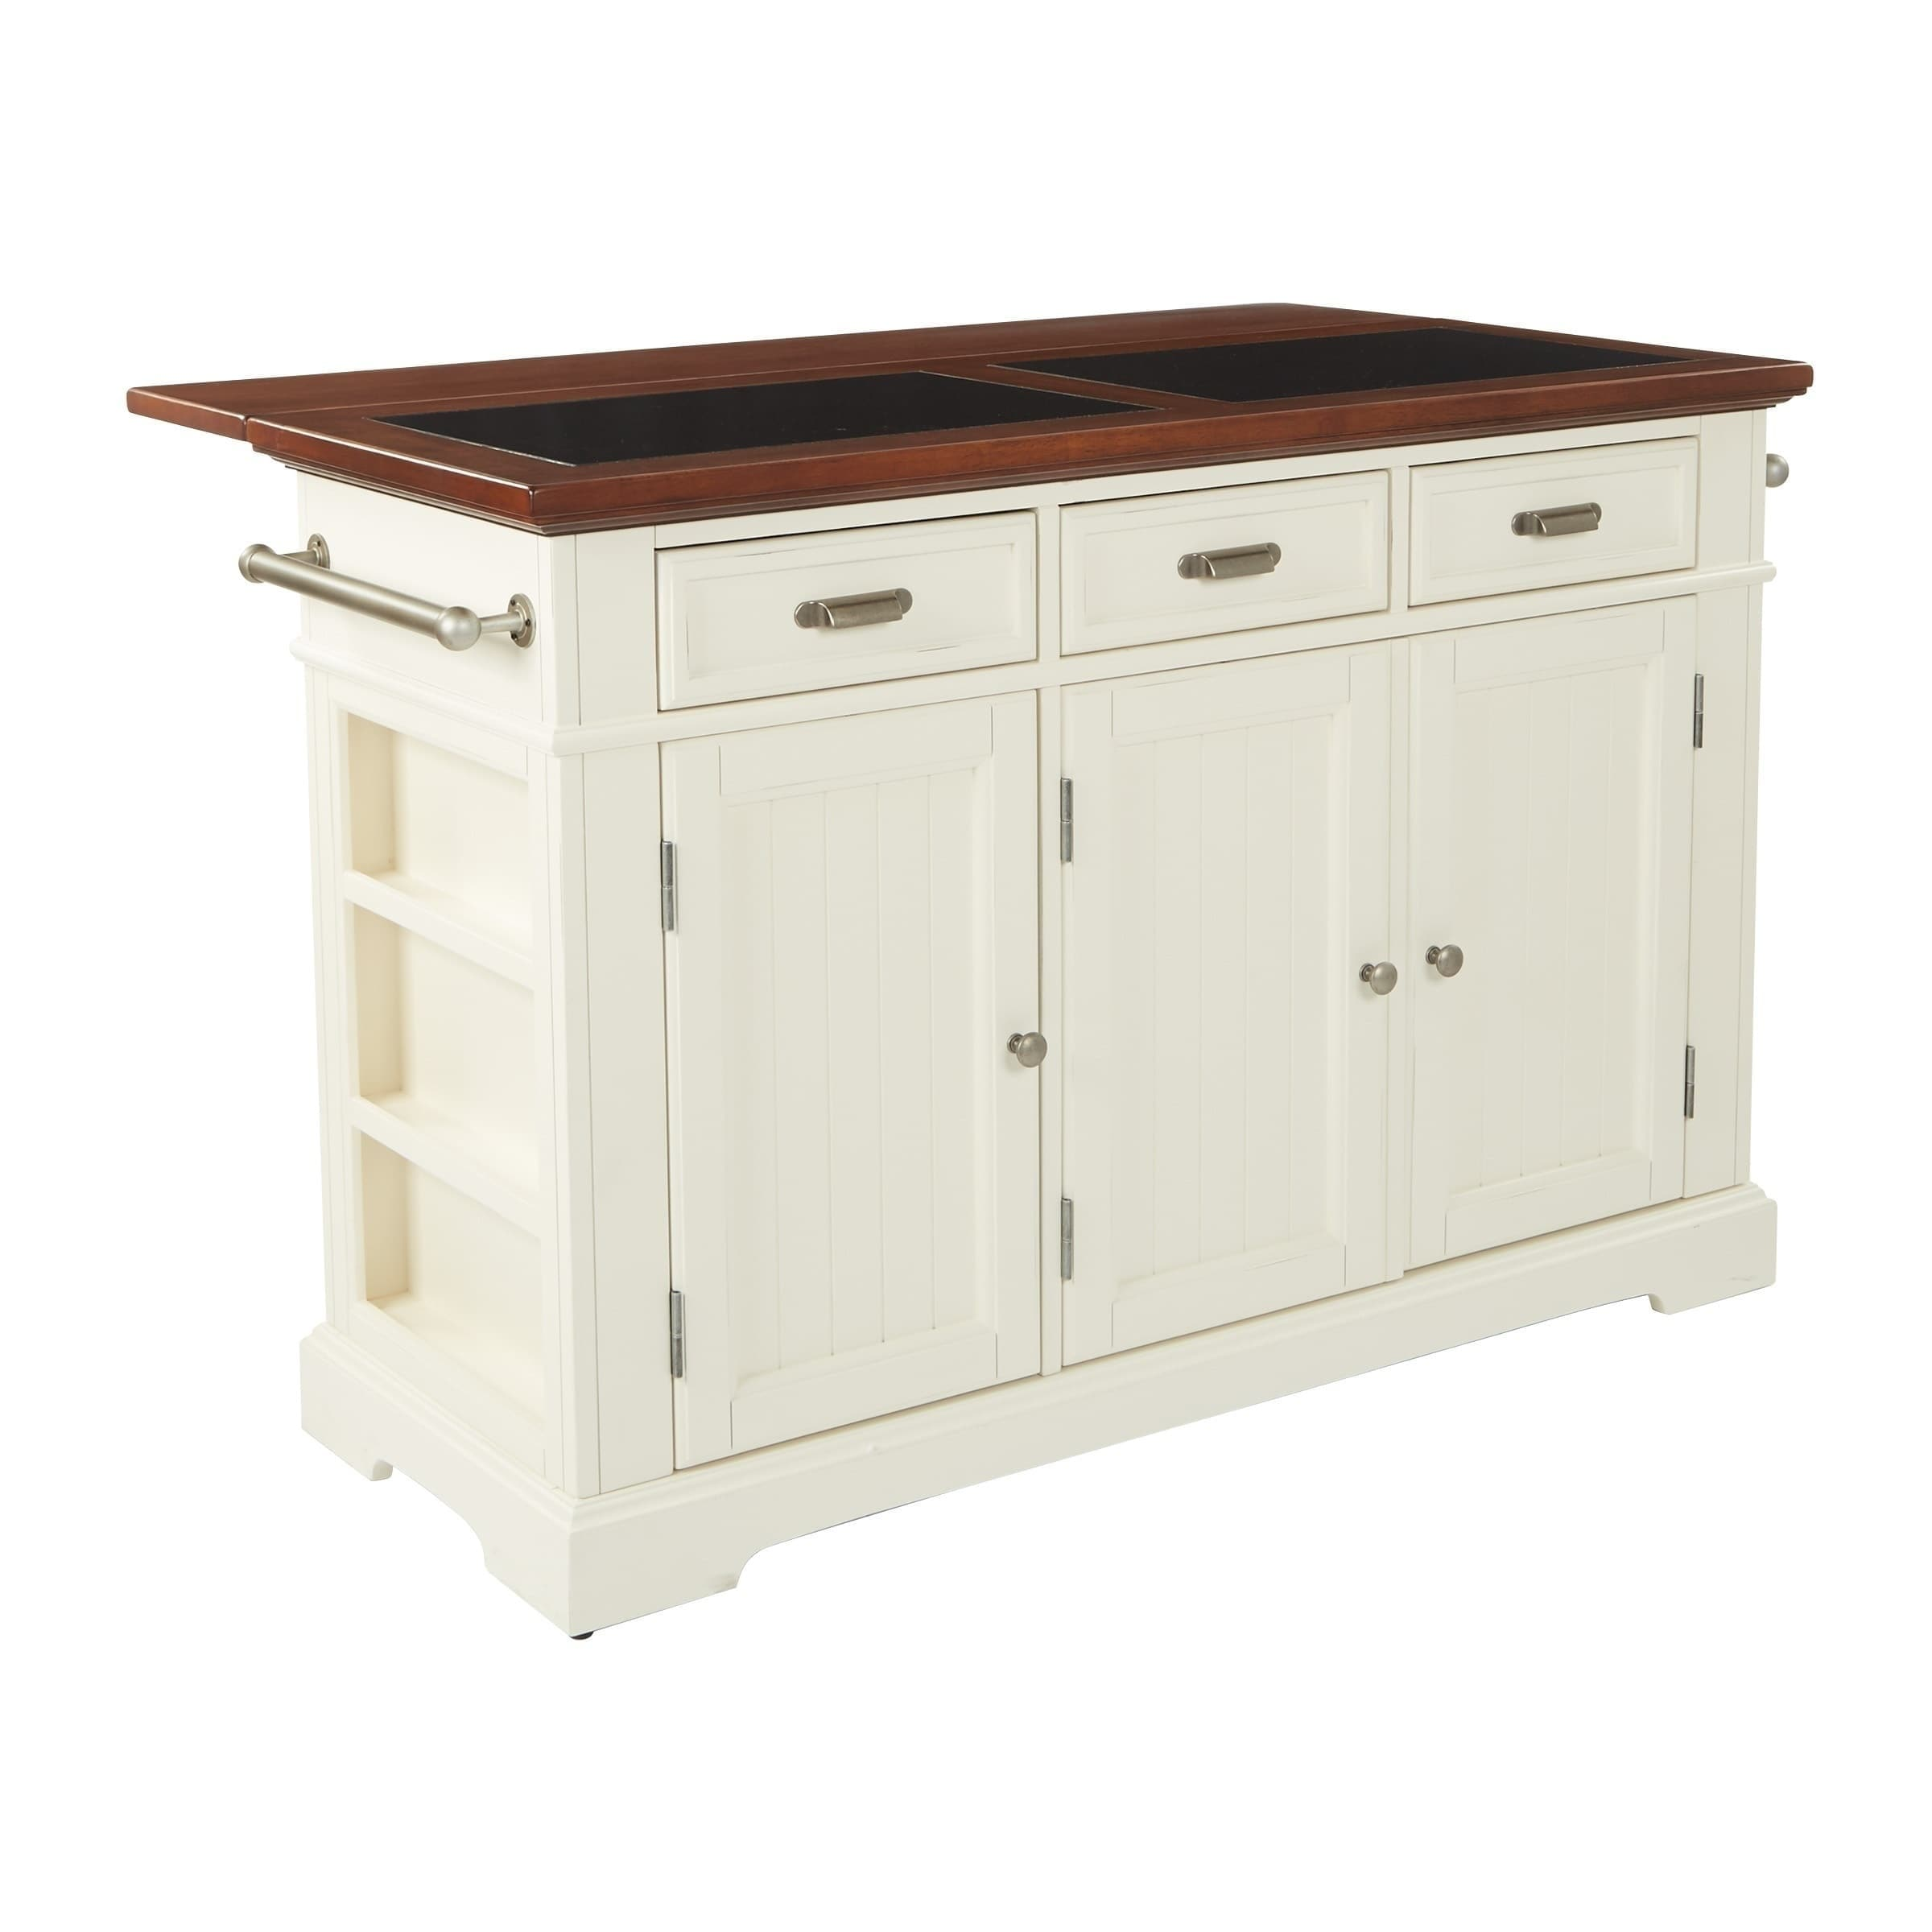 Inspired By Bassett Farmhouse Basics White Kitchen Island With Vintage